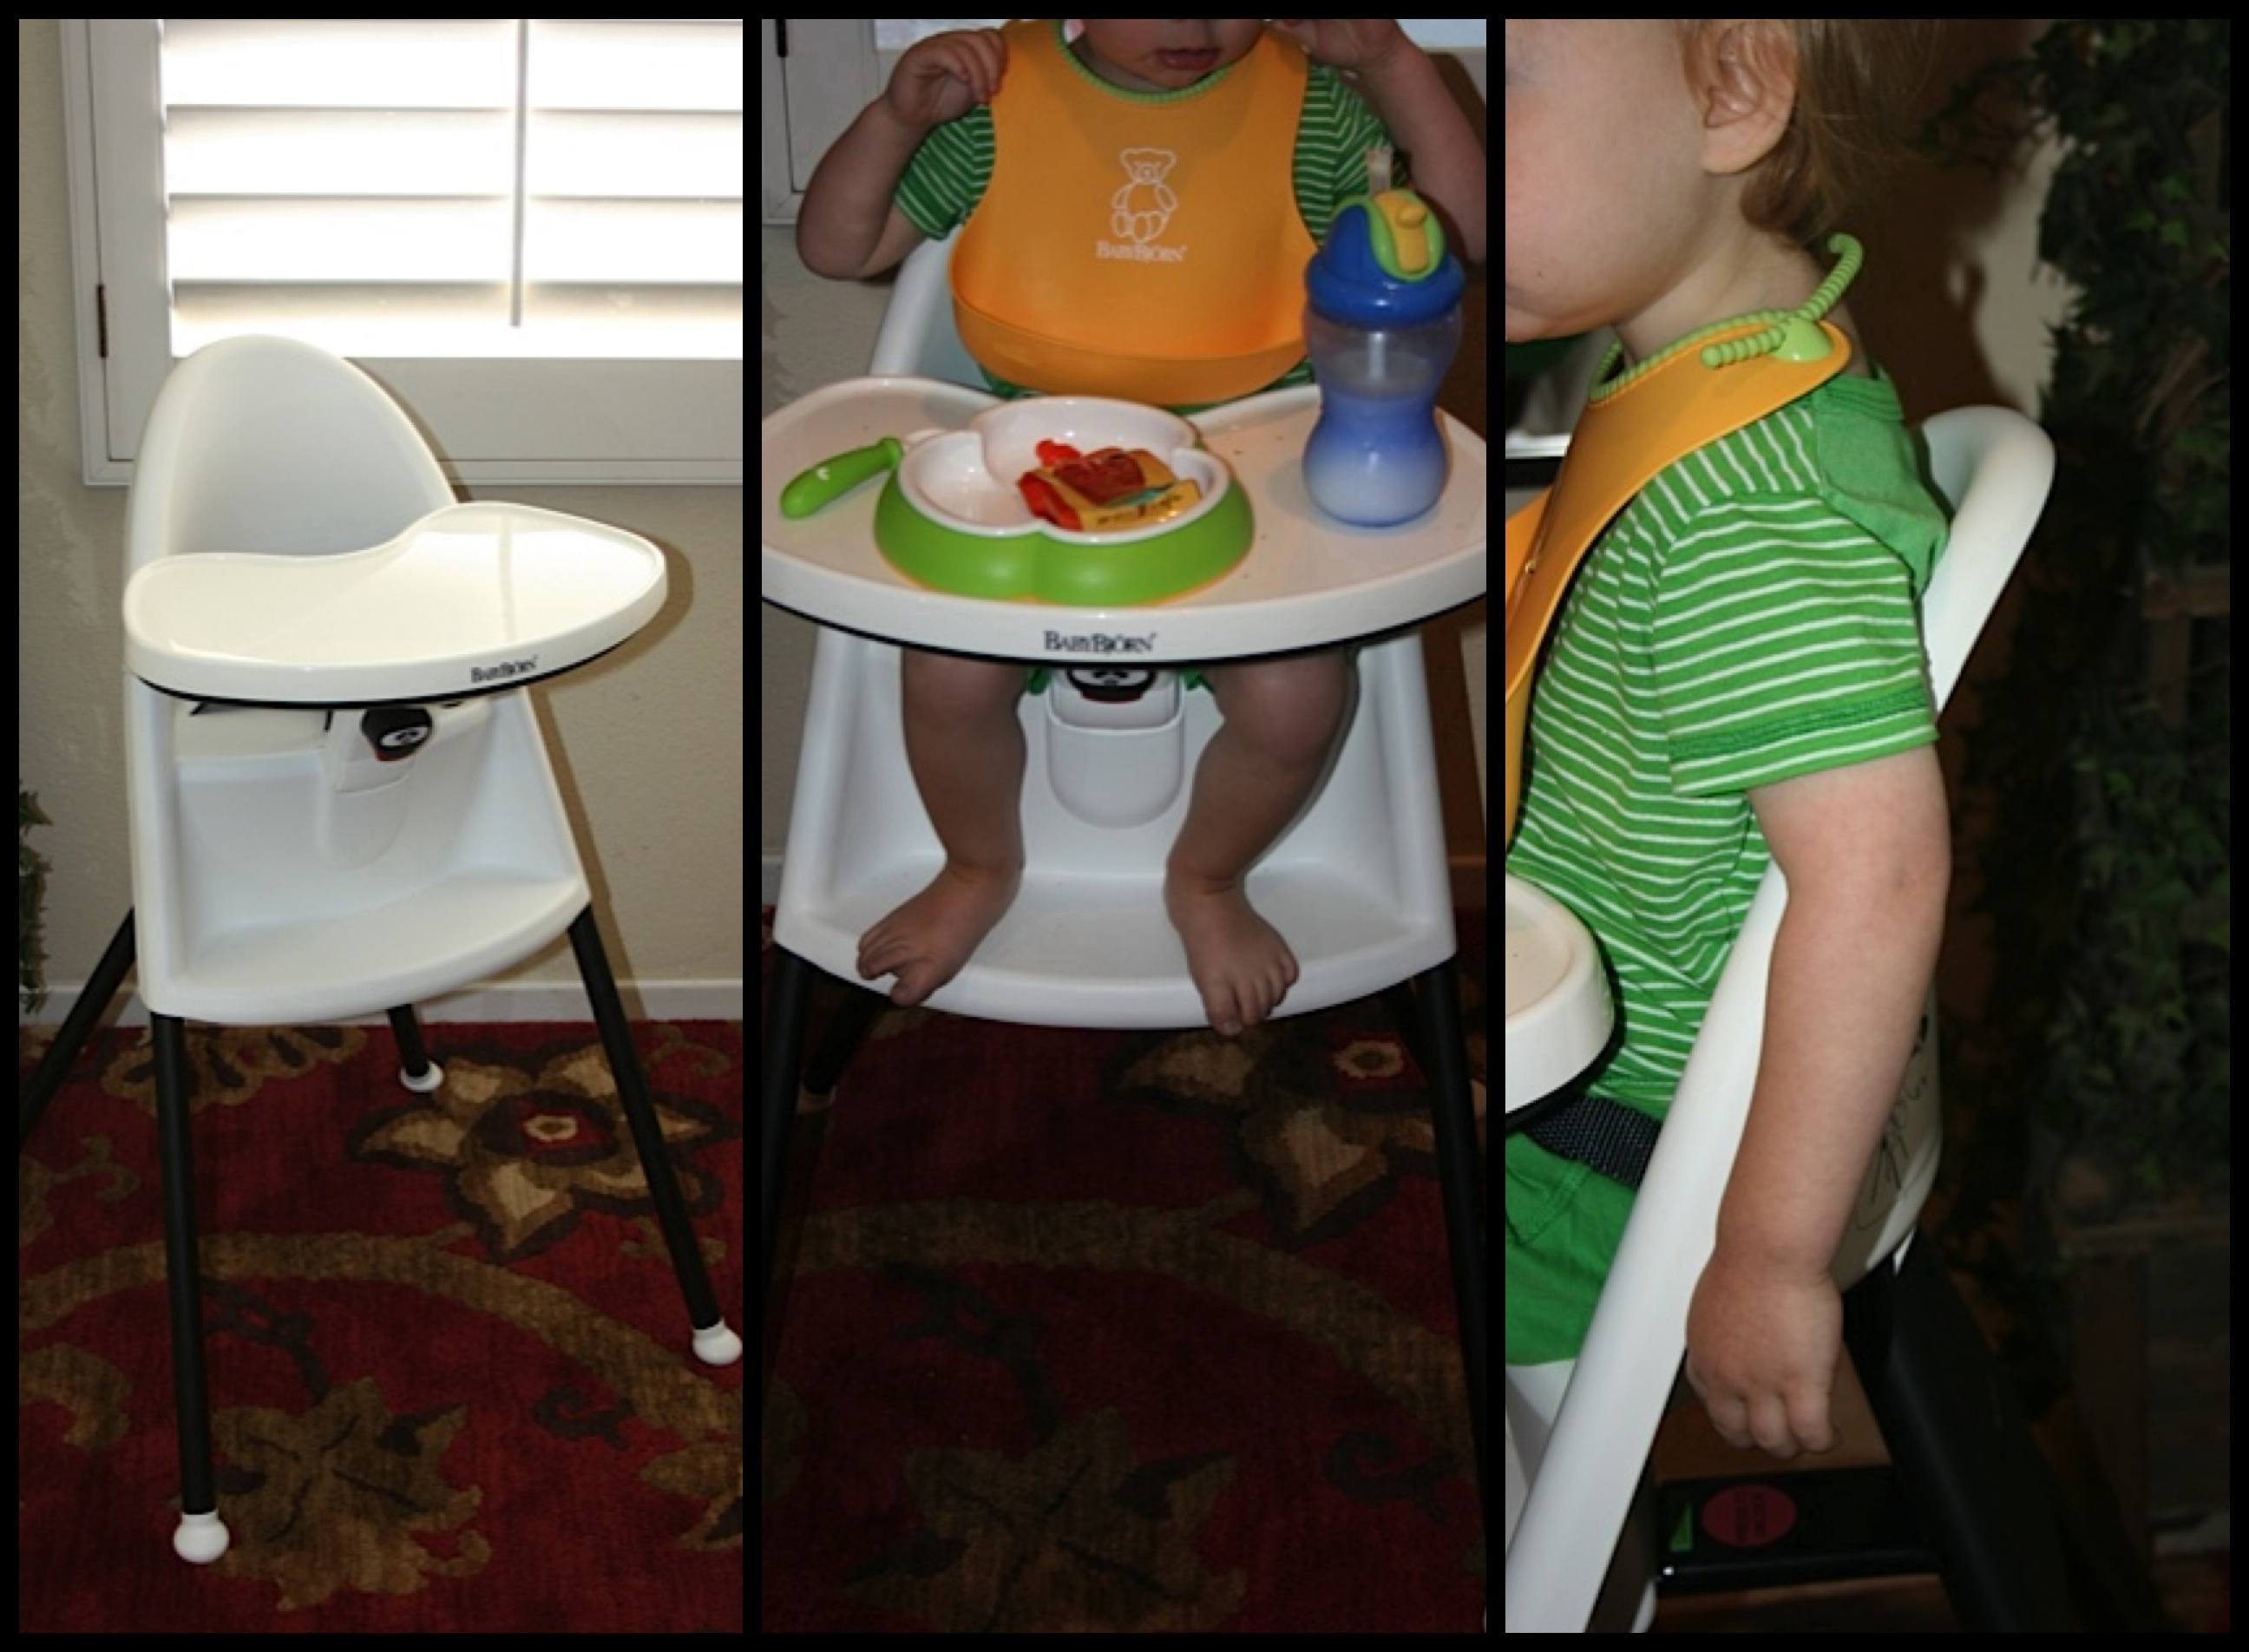 keter baby high chair reviews club covers for sale spotlight product review babybjörn